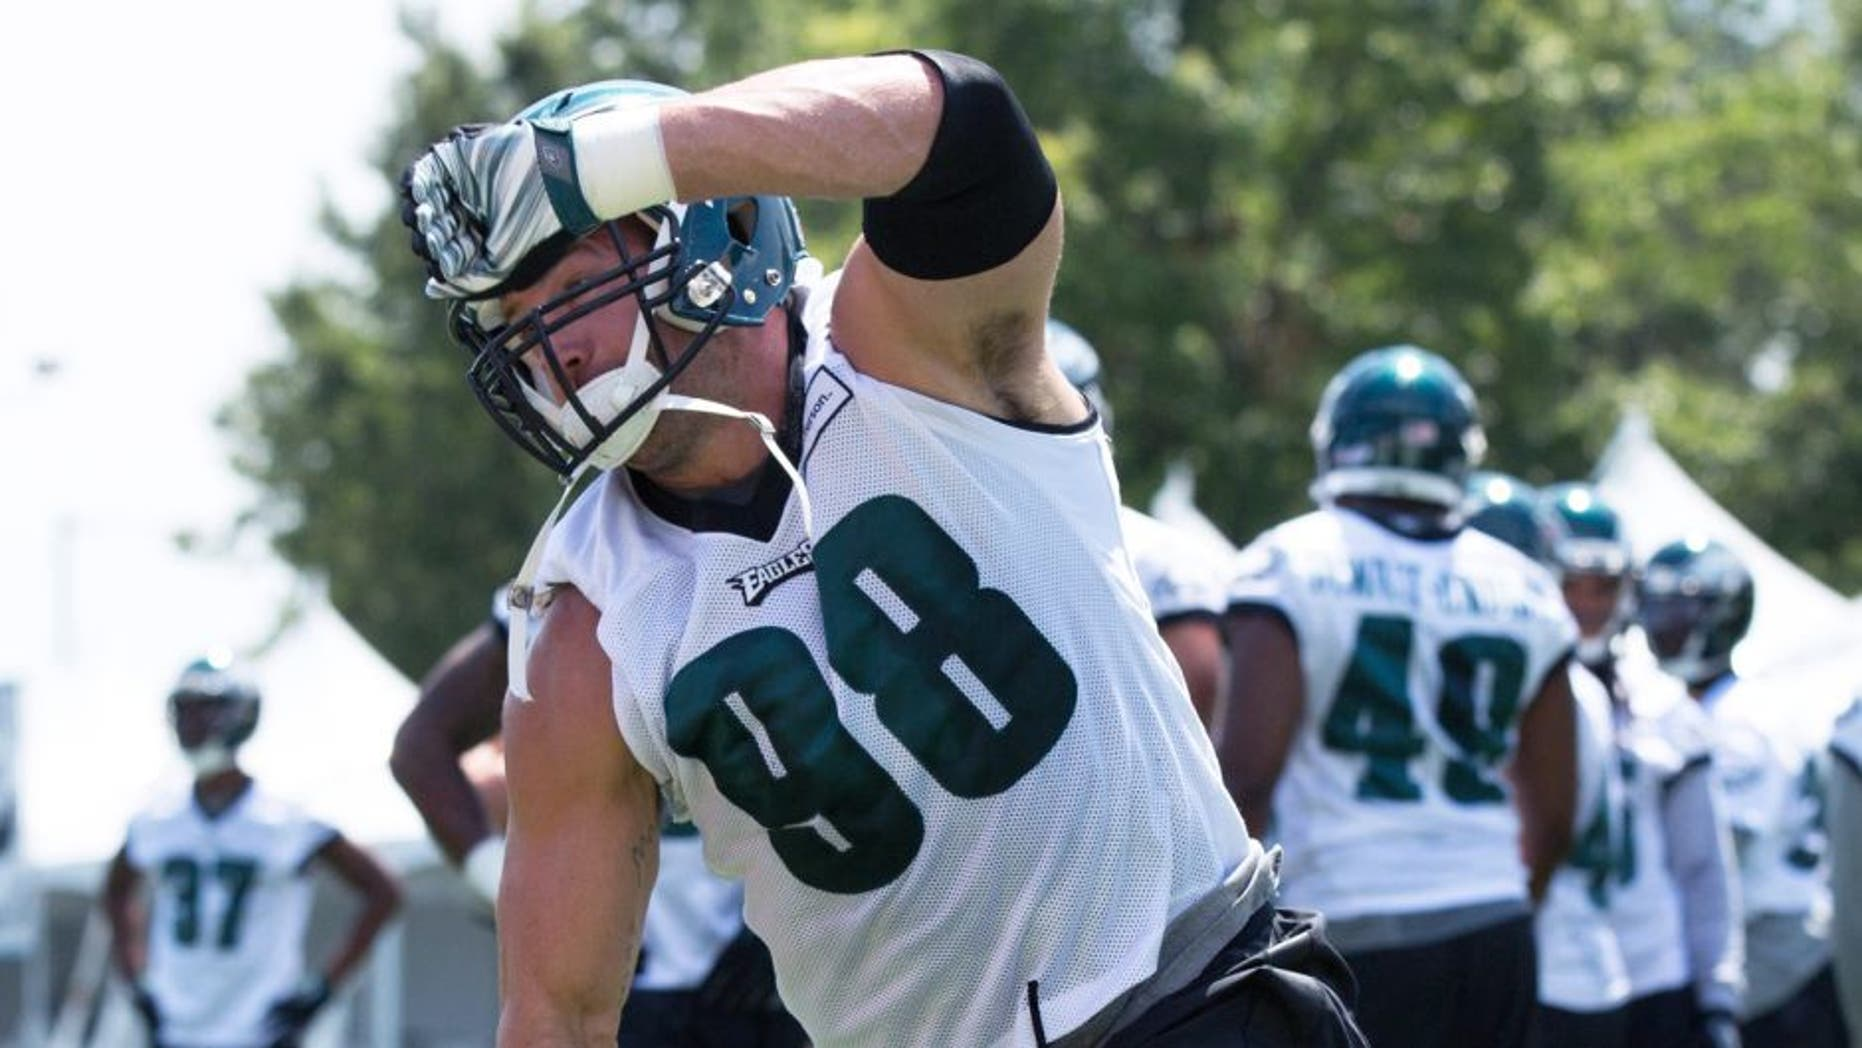 Aug 2, 2015; Philadelphia, PA, USA; Philadelphia Eagles outside linebacker Connor Barwin (98) during training camp at NovaCare Complex. Mandatory Credit: Bill Streicher-USA TODAY Sports